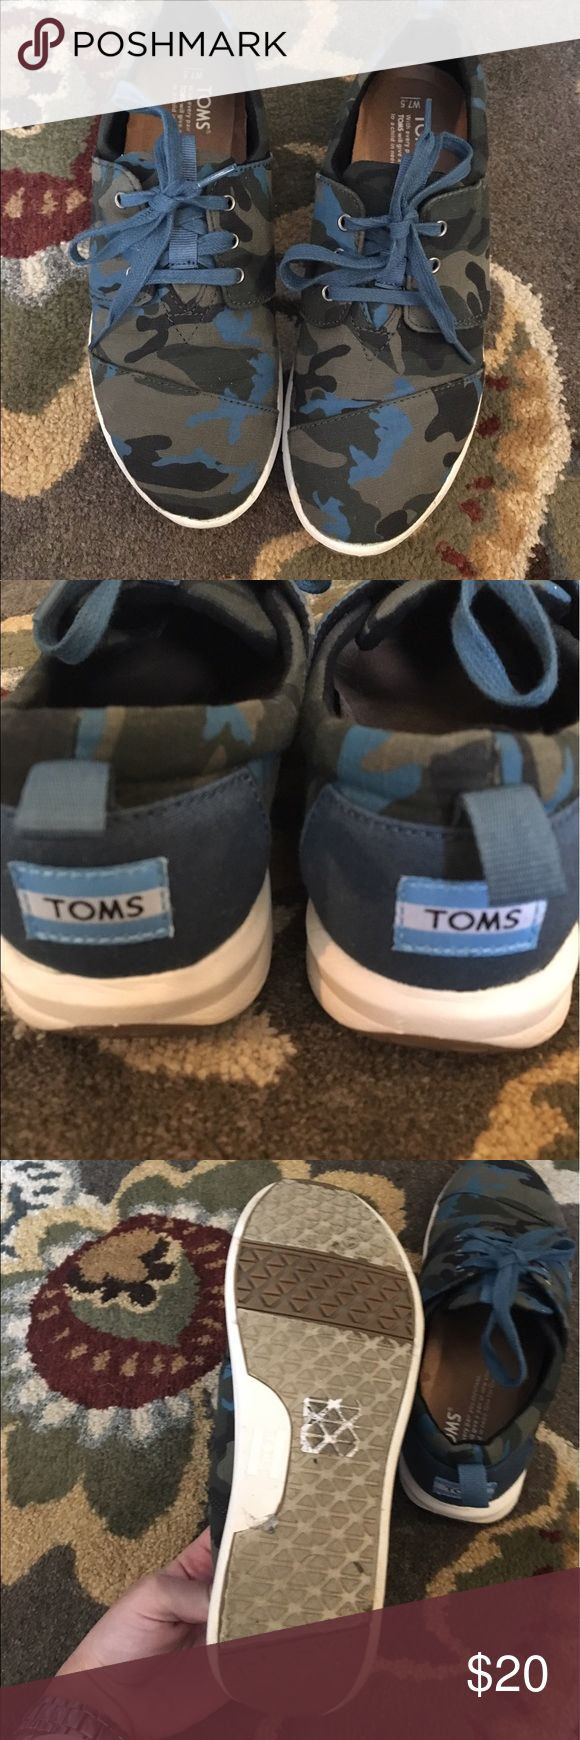 Gently Used TOMS Camo Del Ray Sneaker Gently used TOMS Camo Del Ray Sneaker. Size 7.5. Super cute and in great condition. Camo is blue, green and black. Original laces still in great condition TOMS Shoes Sneakers